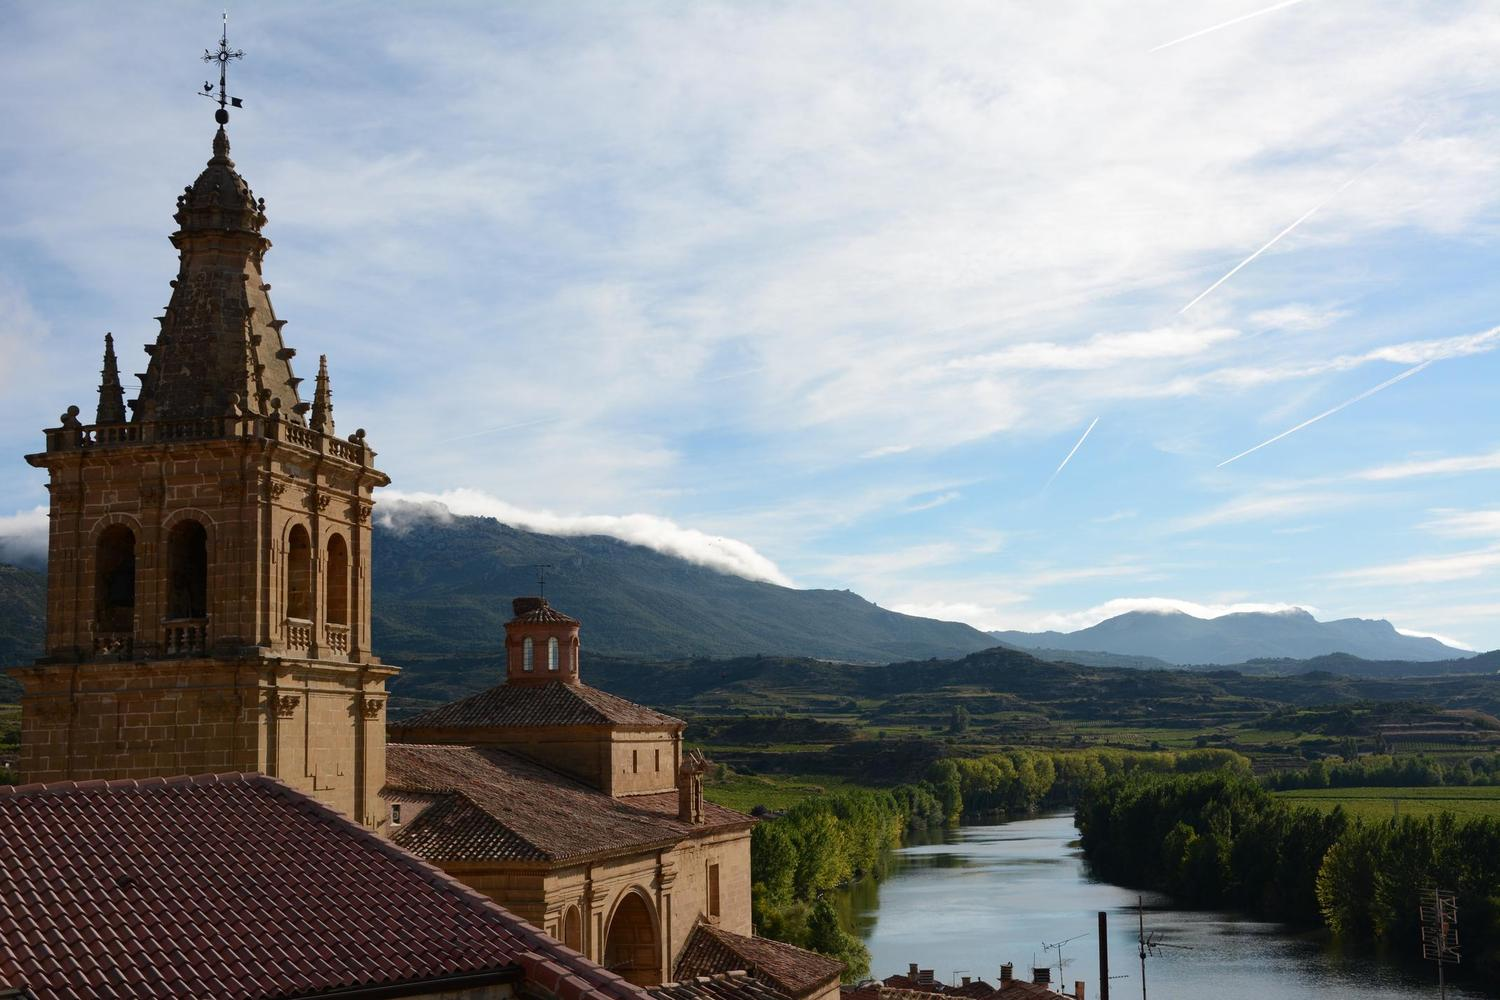 Looking out from the village of Brinas over Rioja's vineyards, the Ebro River and the Cantabrian mountains